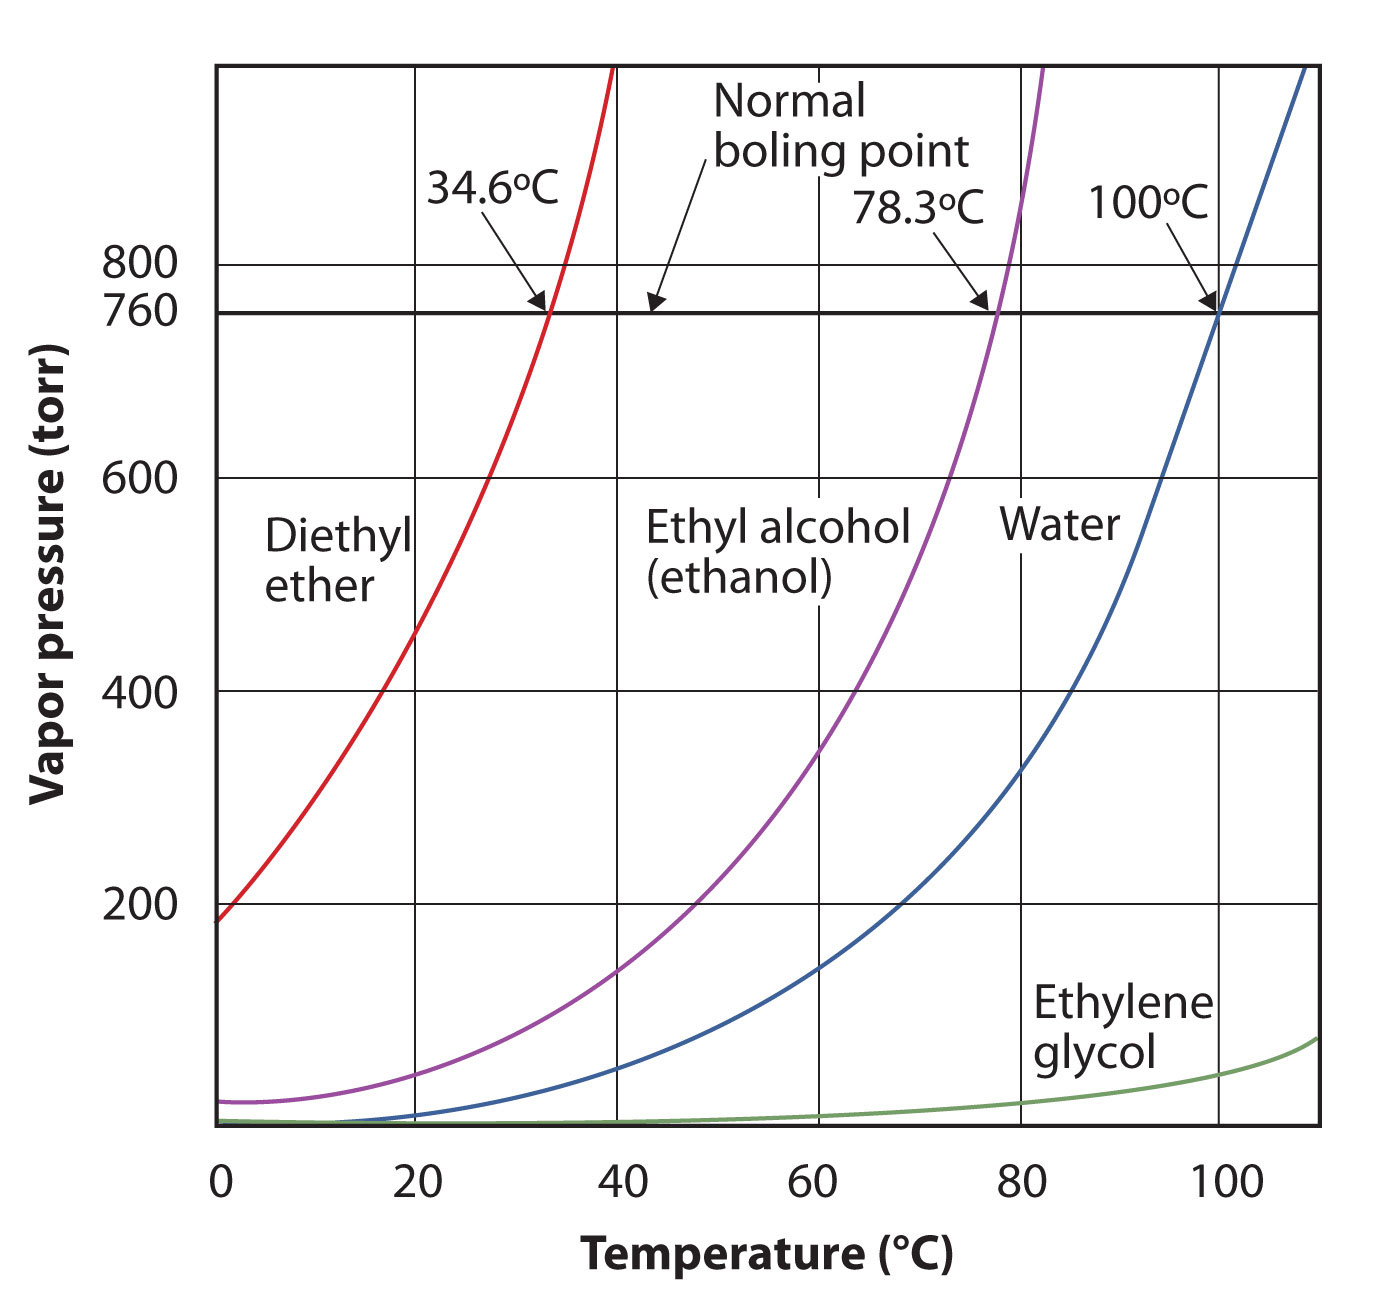 normal boiling point phase diagram gfci outlet with switch wiring introductory chemistry v1 flatworld